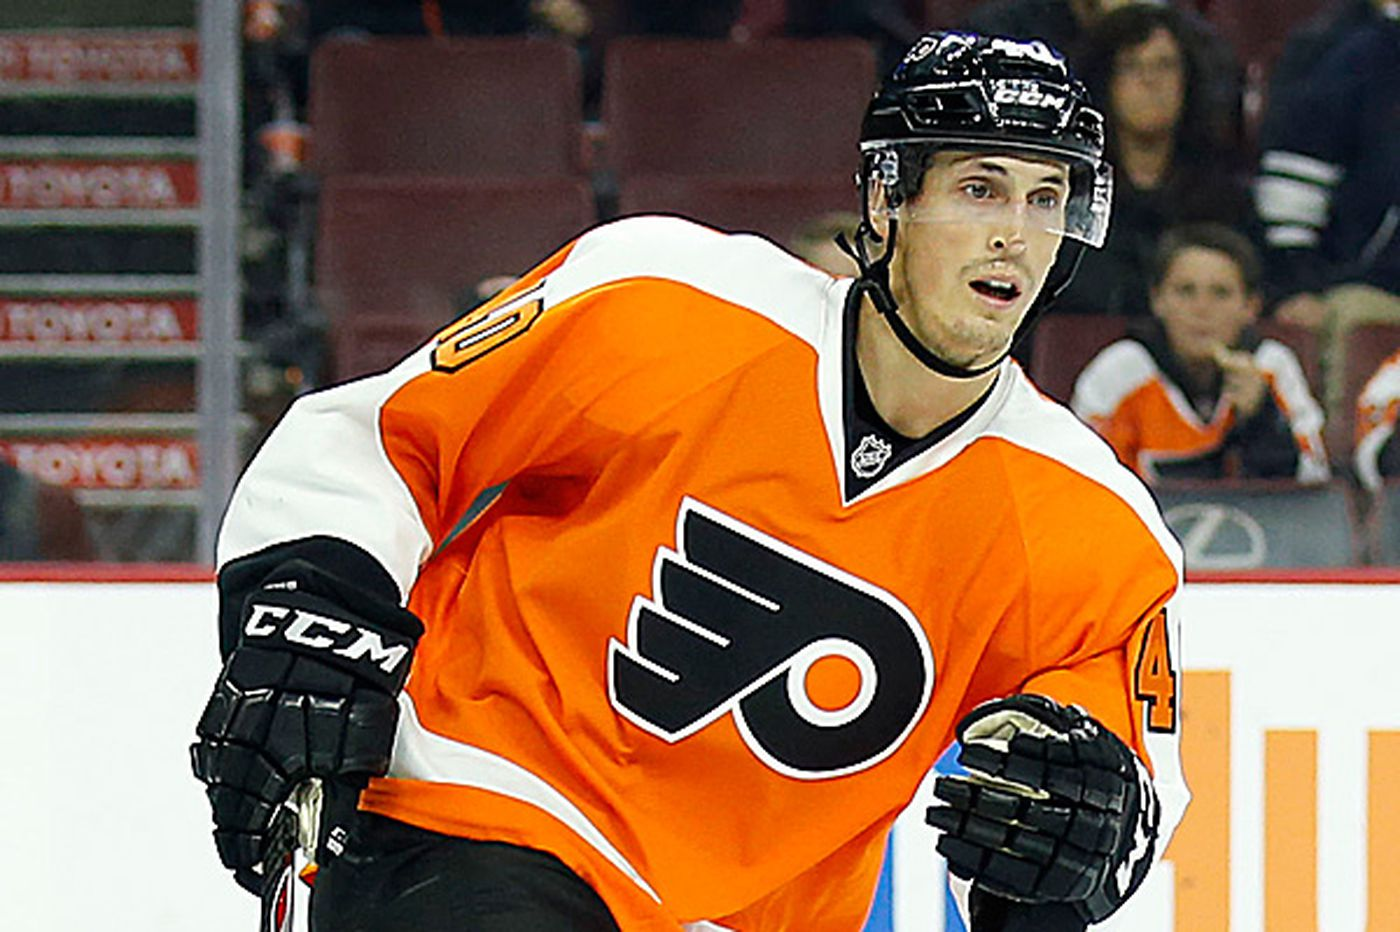 Flyers' Lecavalier at a loss as he waits to play